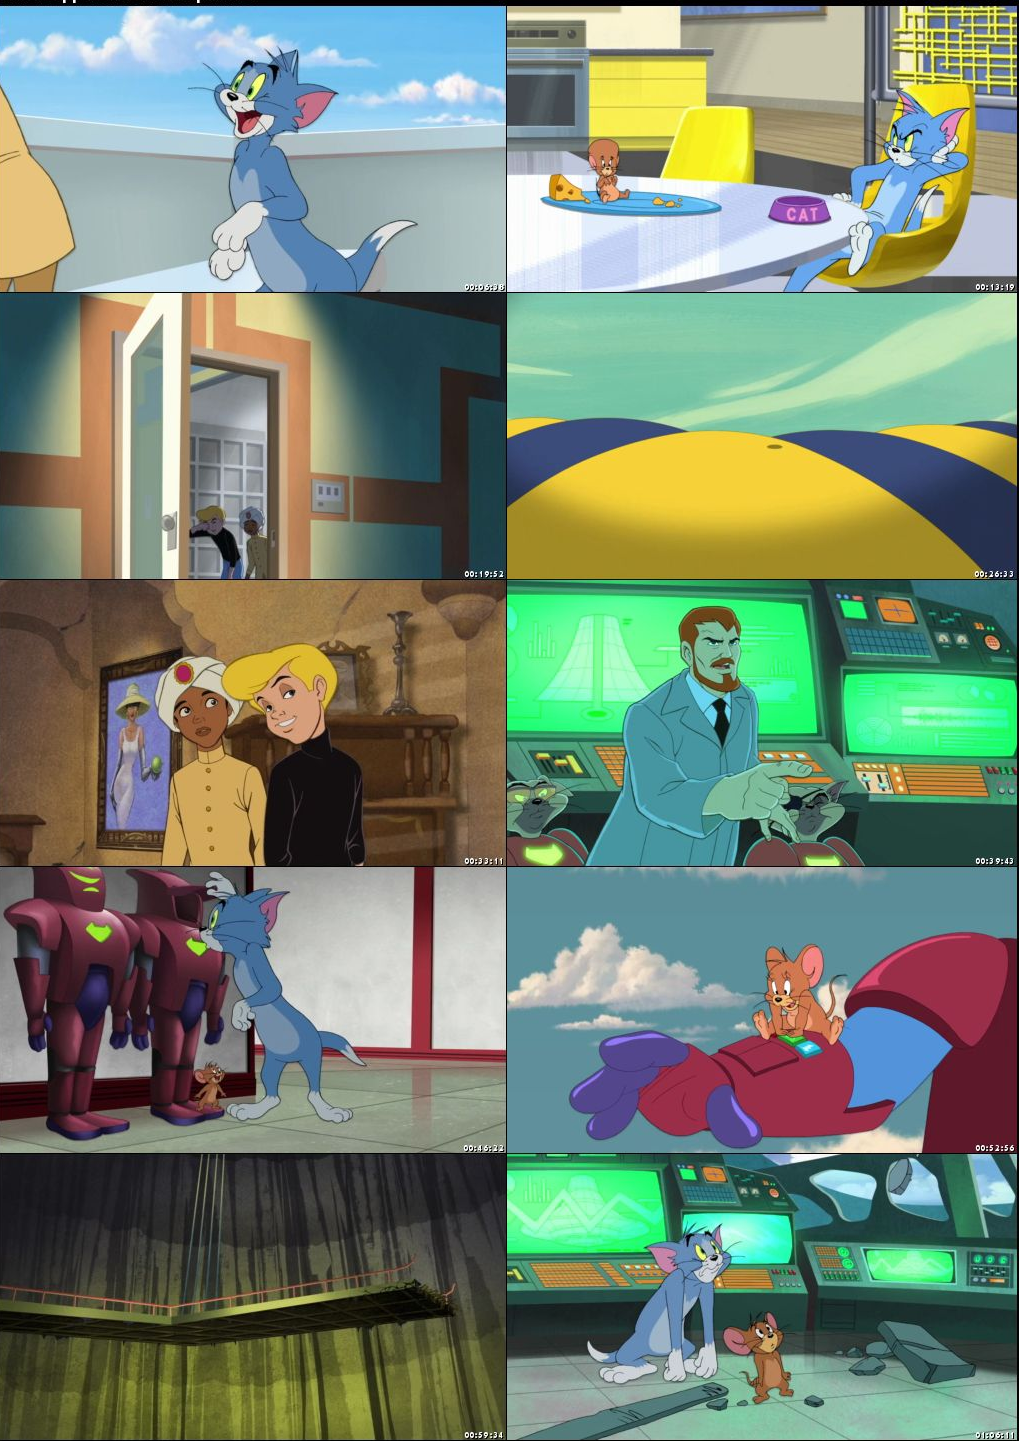 tom and jerry spy quest 2015 movie free download 720p